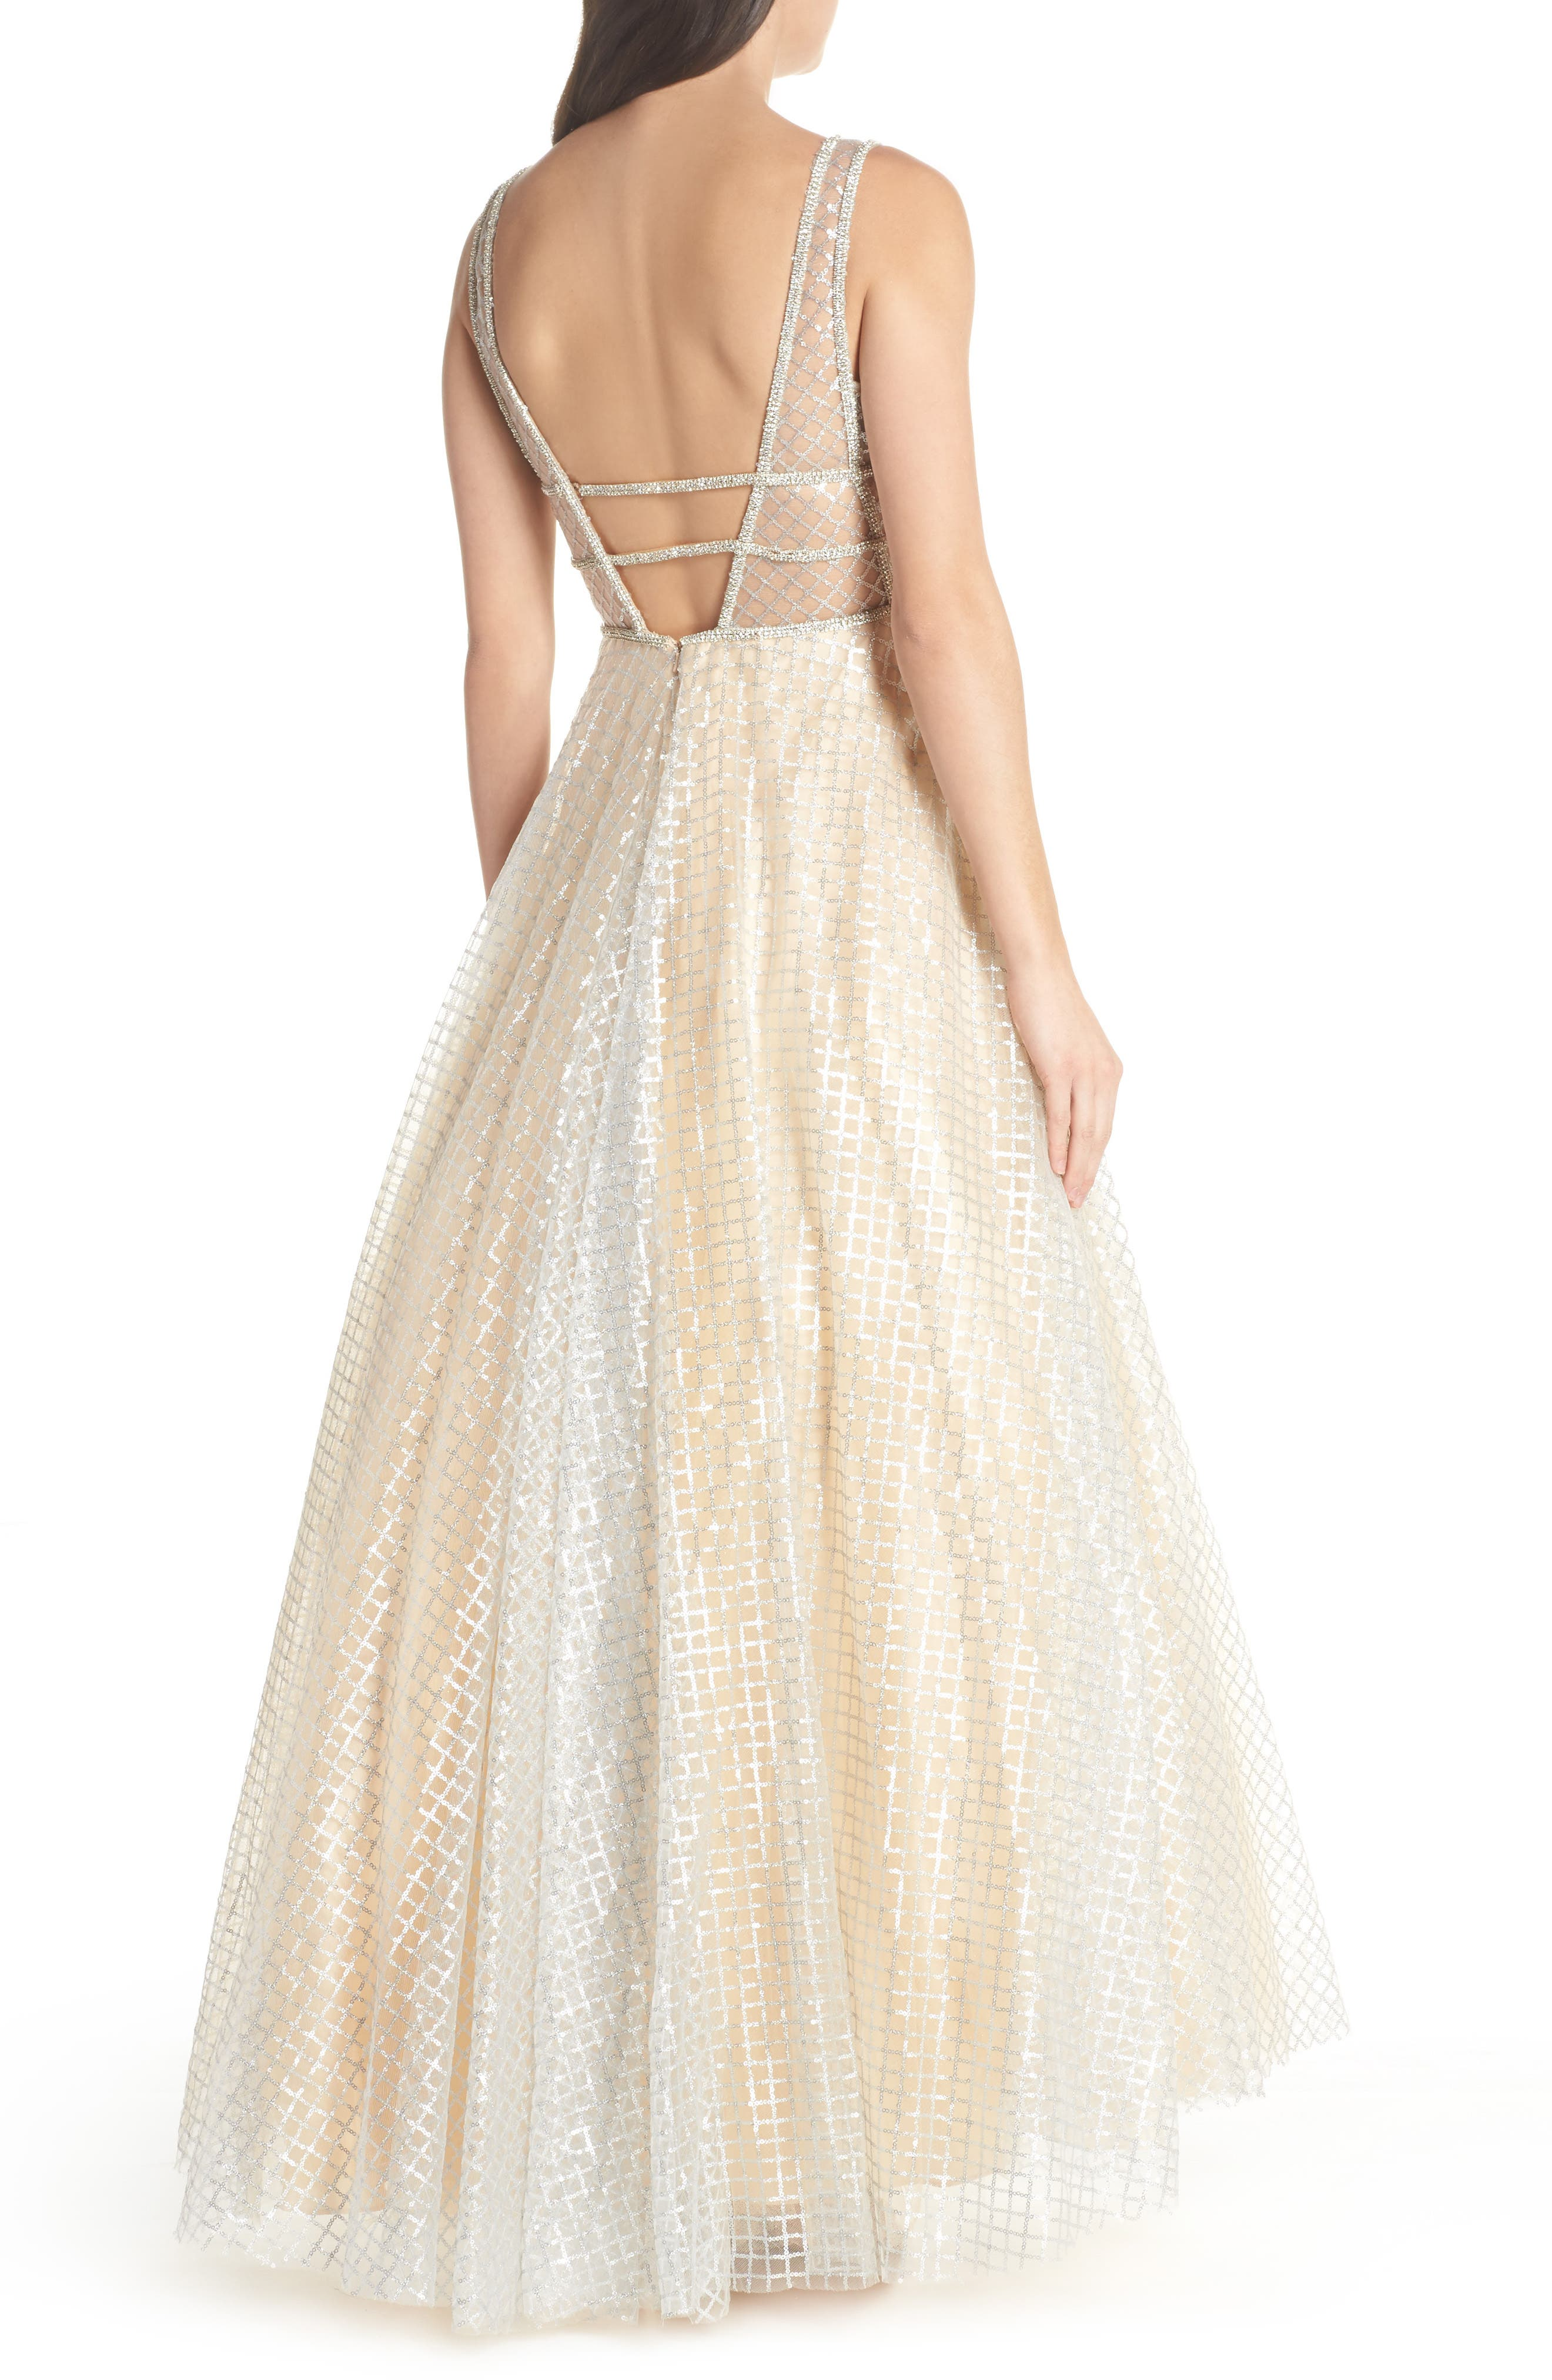 MAC DUGGAL, Sequin Illusion Neck Gown, Alternate thumbnail 2, color, NUDE/ SILVER